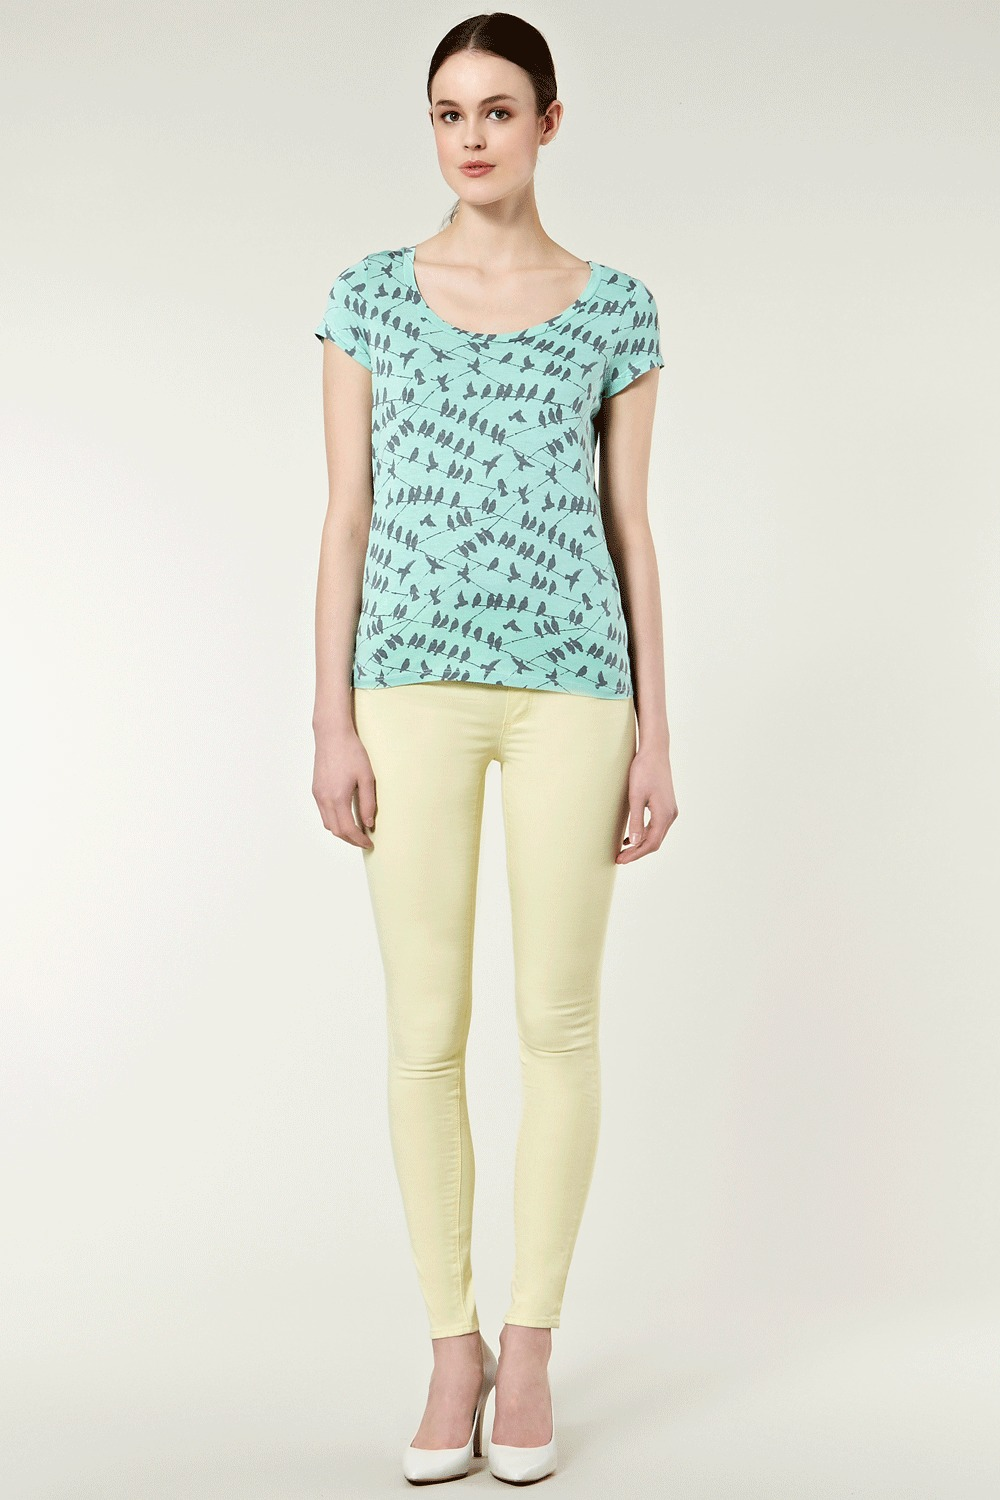 Bird Print Hi Low Hem Tee. - sleeve style: capped; pattern: heavily patterned, print, small animal print, animal print, patterned/print; style: t-shirt; hip detail: fitted at hip, fitted hem at hip; predominant colour: pistachio; occasions: casual; length: standard; neckline: scoop; fibres: polyester/polyamide - 100%; material texture: jersey; fit: body skimming; back detail: longer hem at back than at front; trends: prints; sleeve length: short sleeve; pattern type: fabric; pattern size: small & busy; texture group: jersey - stretchy/drapey